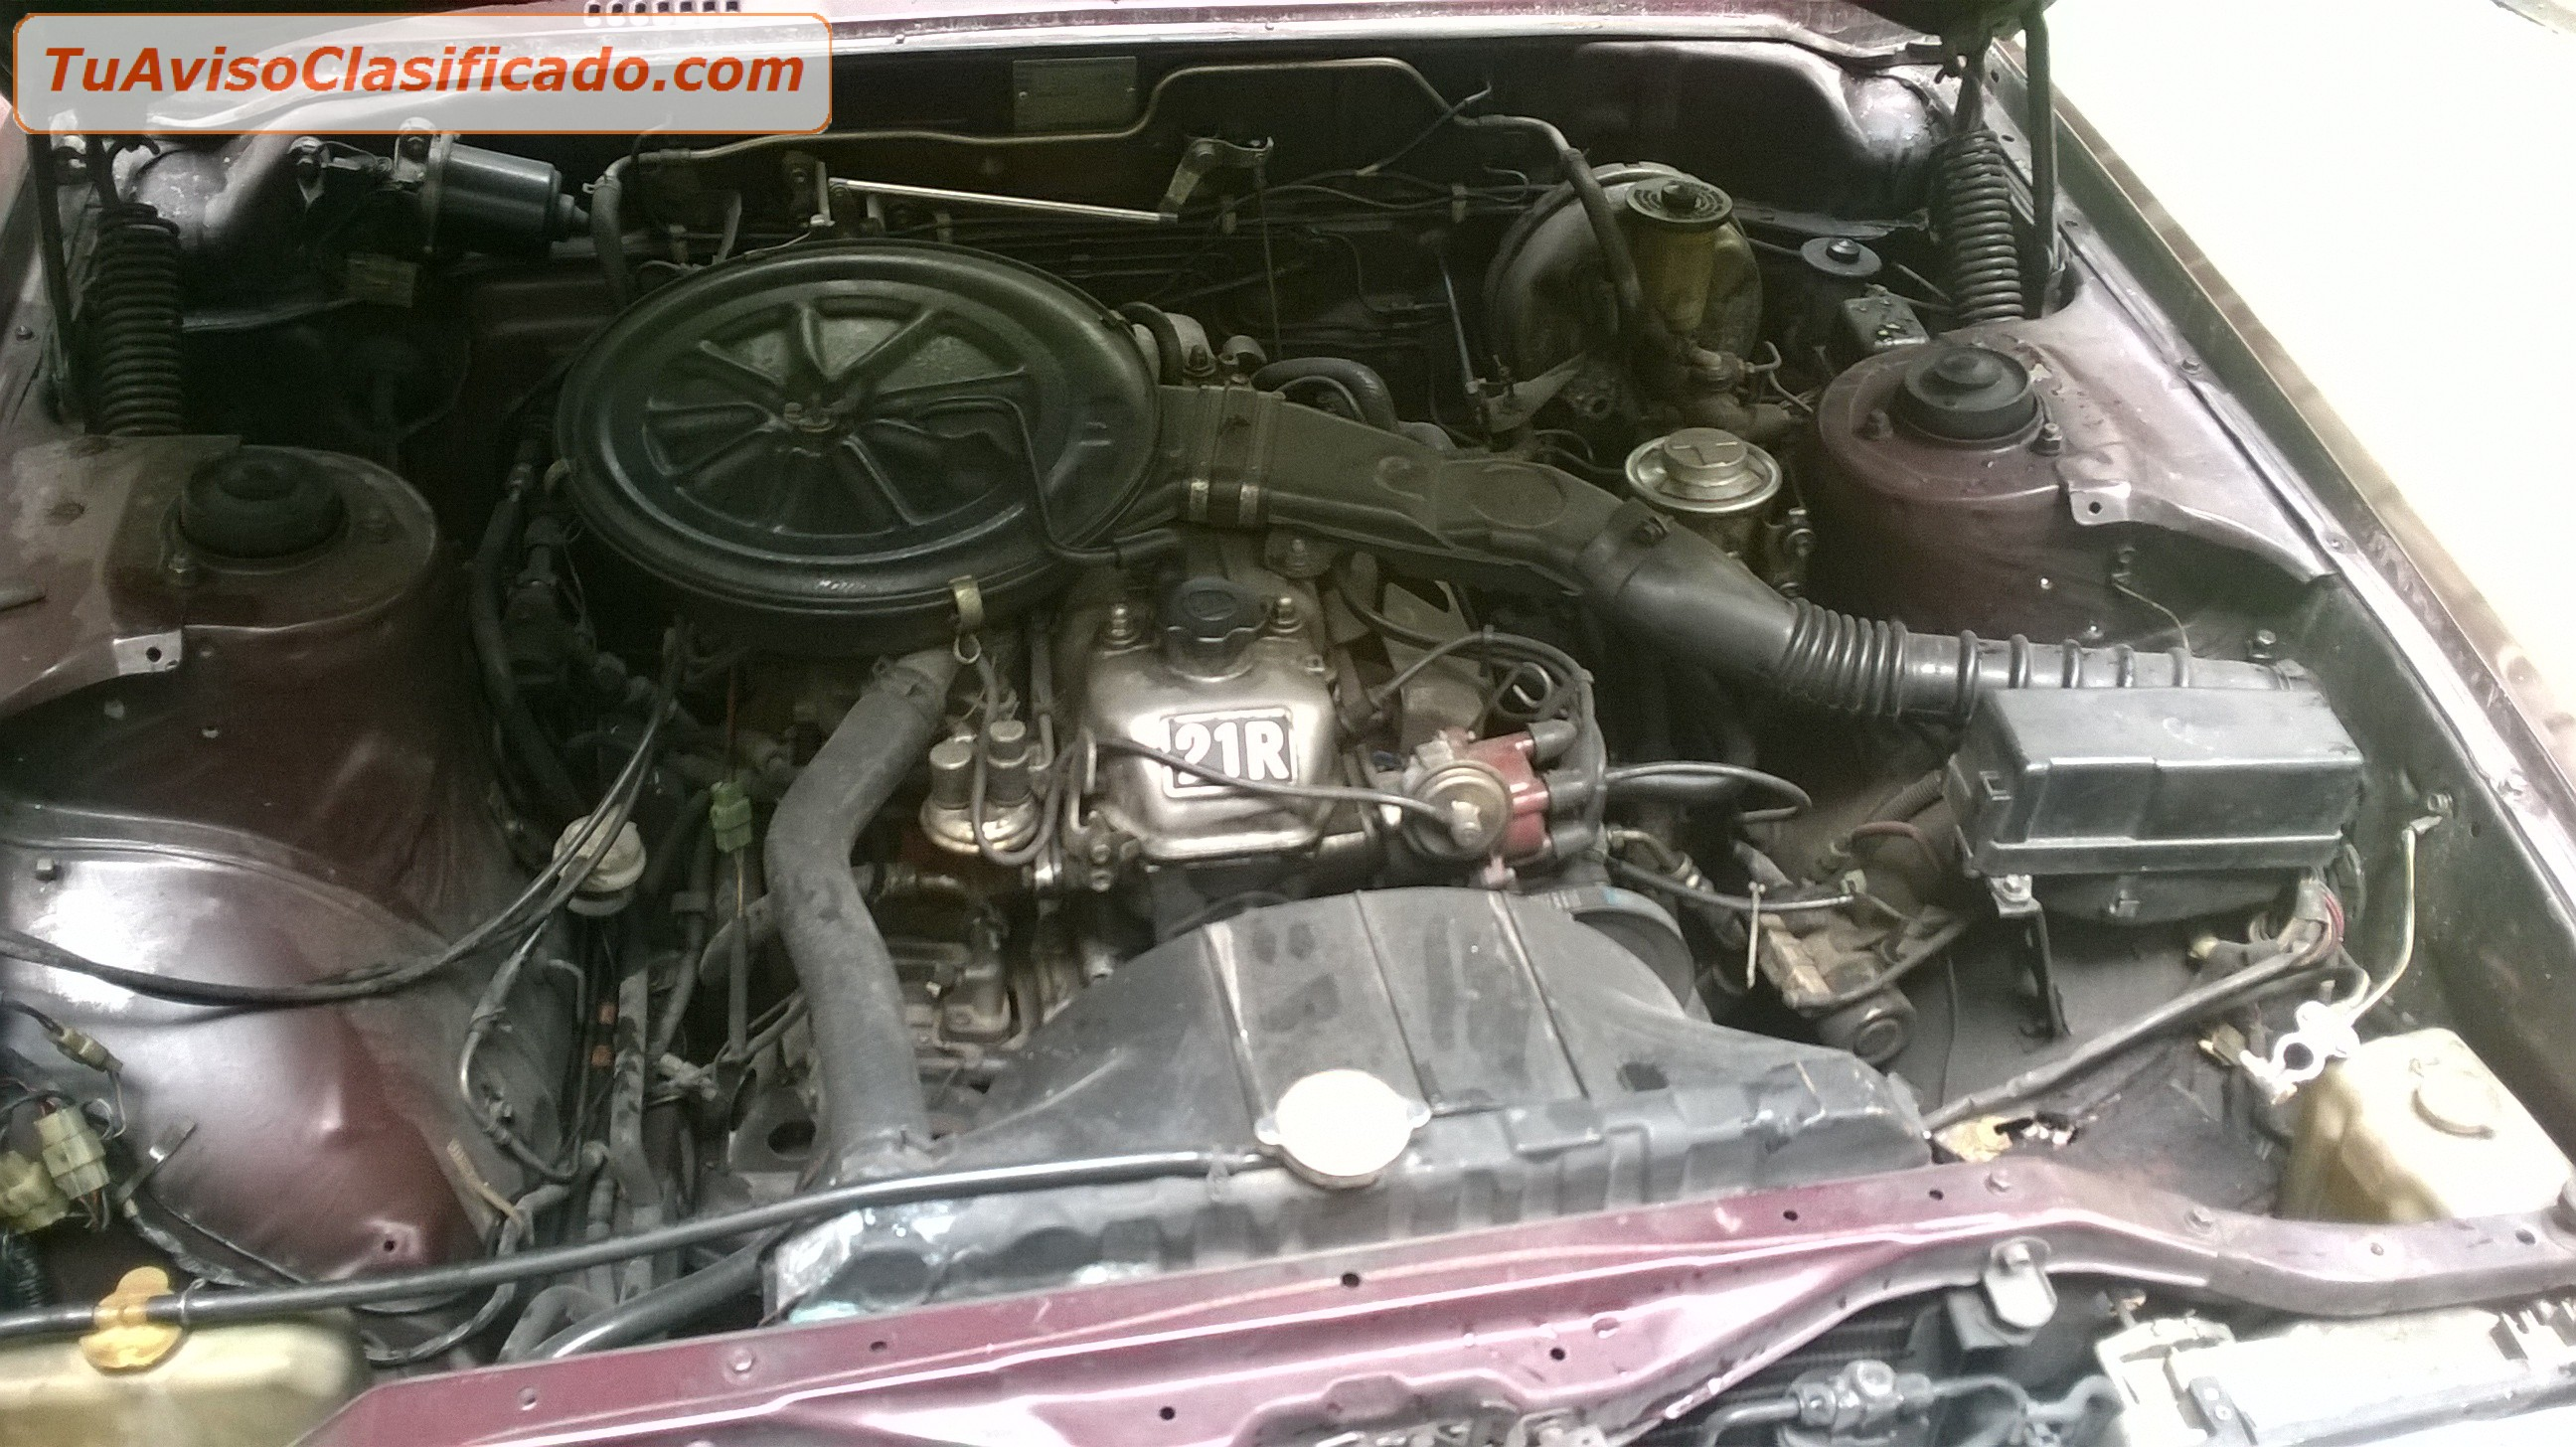 85 Toyota Radio Wiring Diagram furthermore 84 Toyota Cressida Wiring Diagram in addition Autos Y Carros also 2006 Vw Seat Altea 2 0 Fsi ID15UMpD further 92 Cadillac Eldorado Engine Diagram. on toyota cressida radio